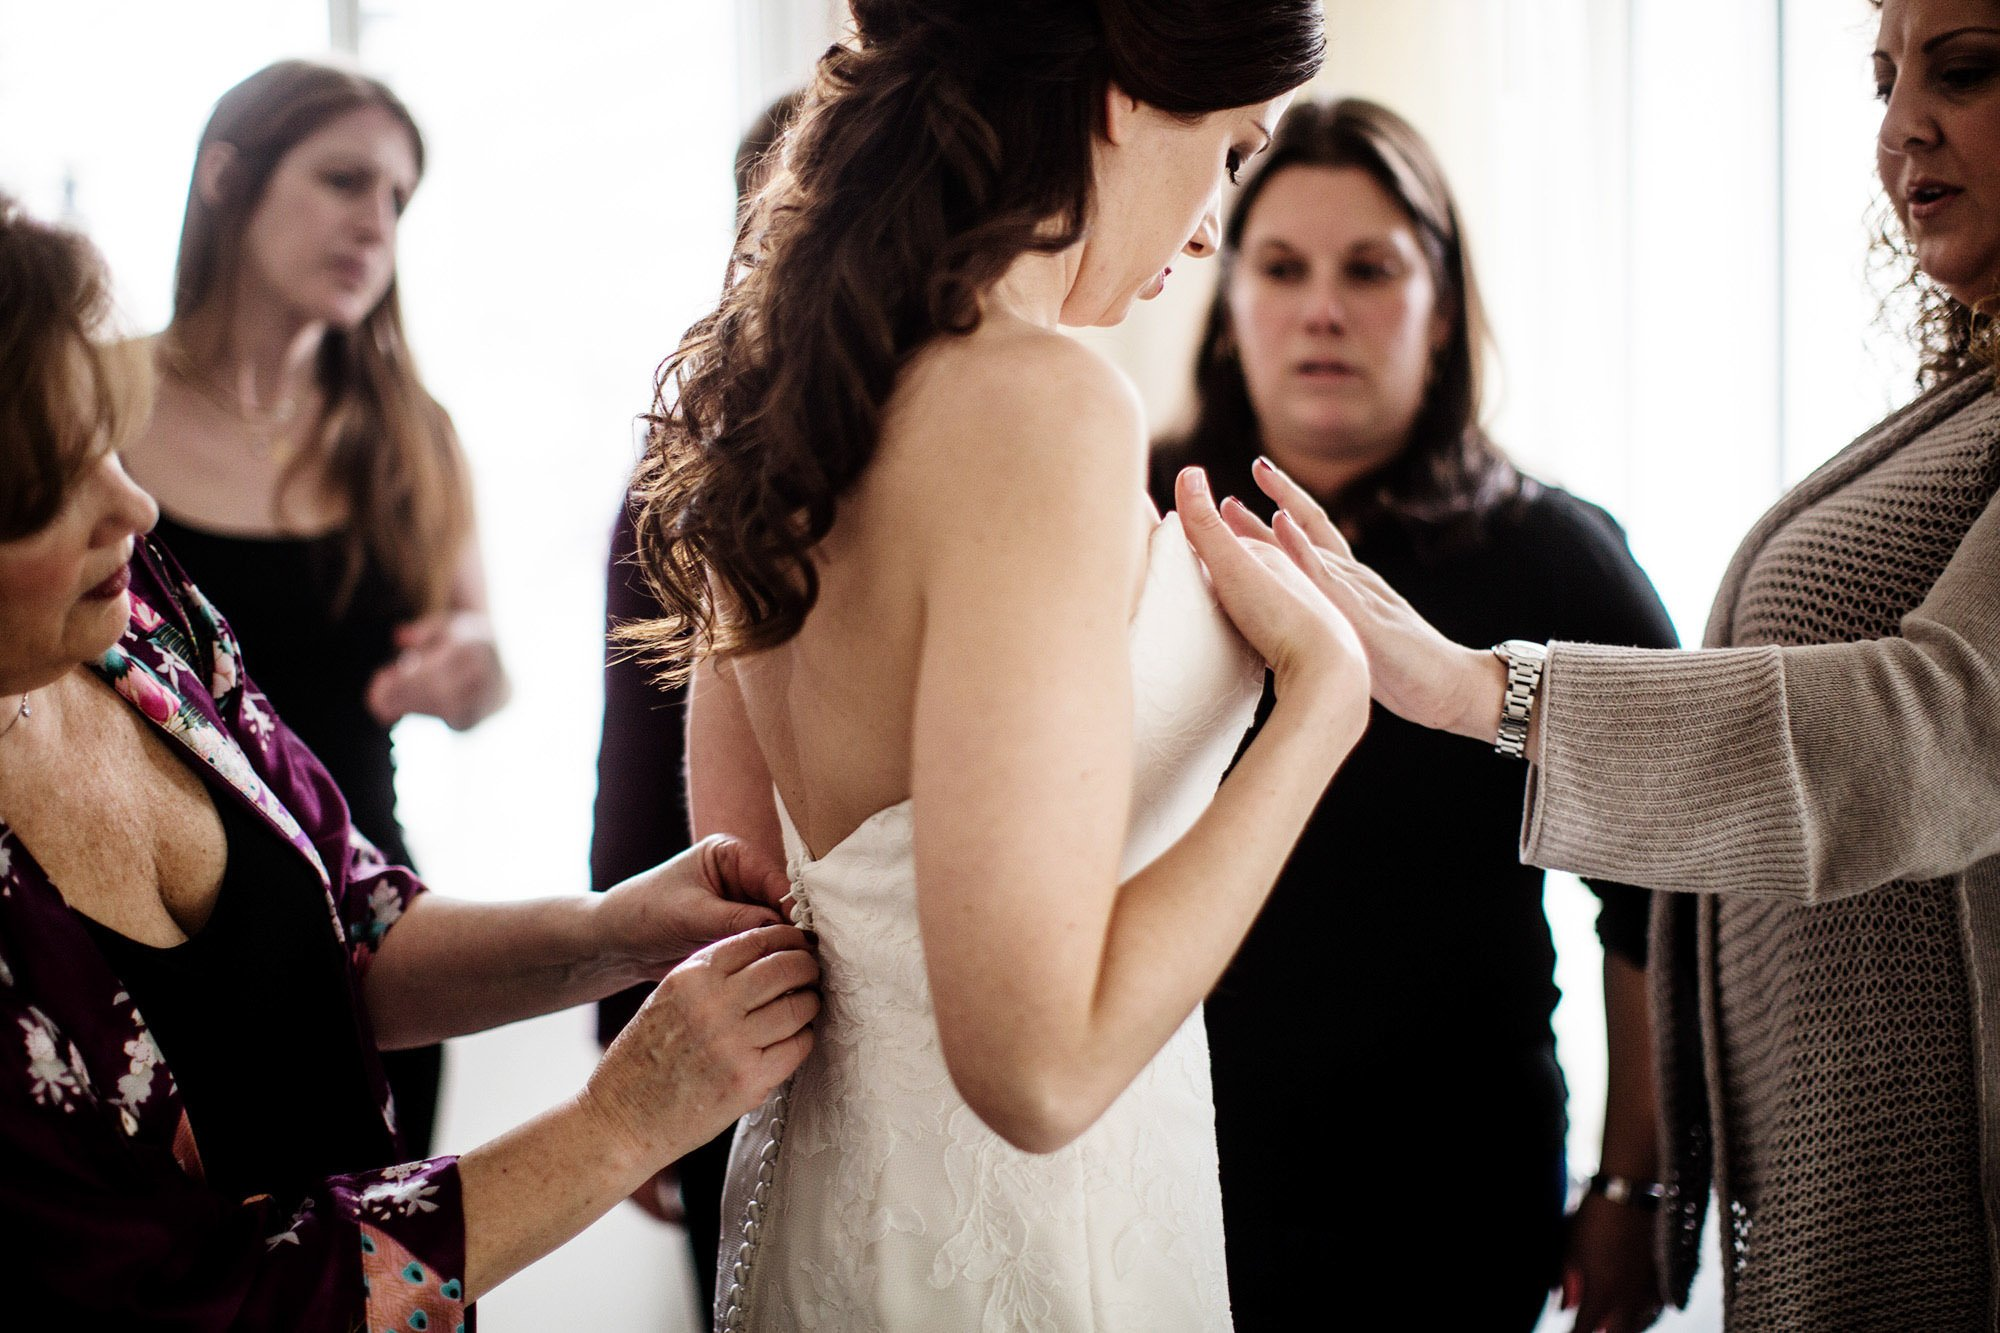 The bride puts on her wedding dress at the Sofitel in Washington, DC prior to the NMWA wedding.